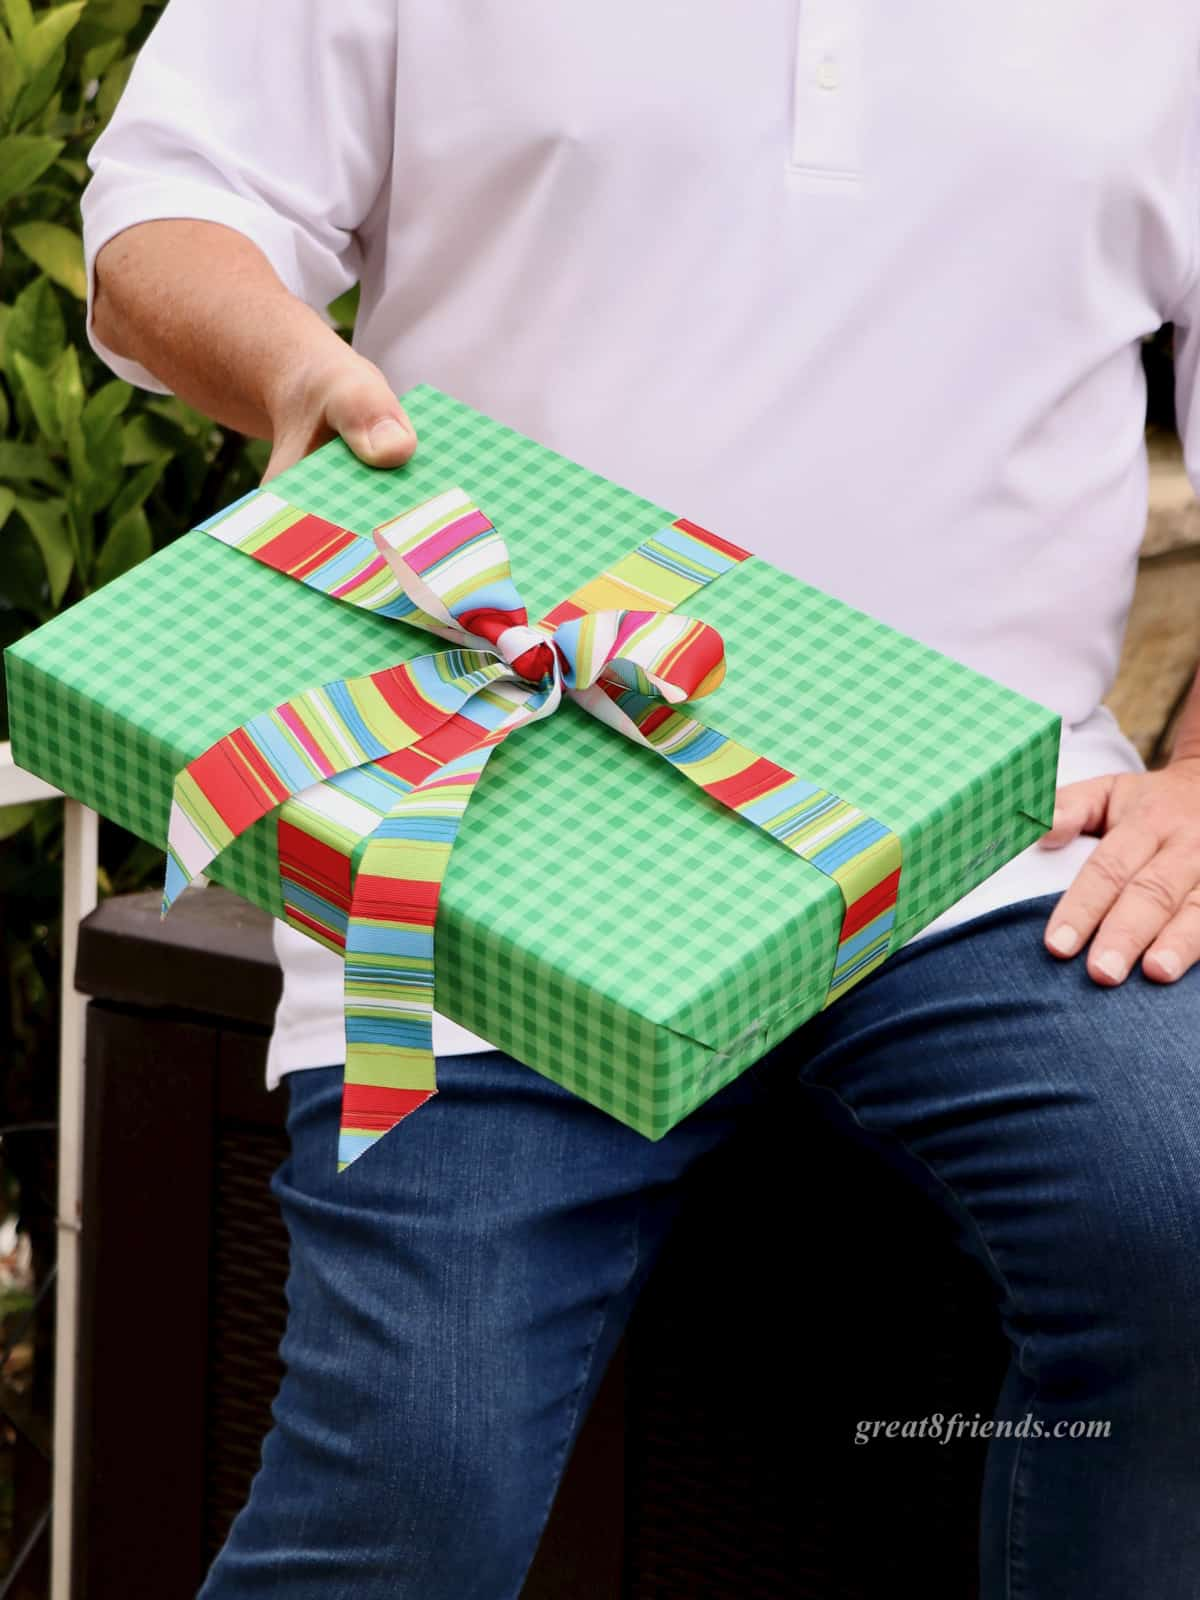 A man's hand holding a gift wrapped in green paper with a bright striped bow.